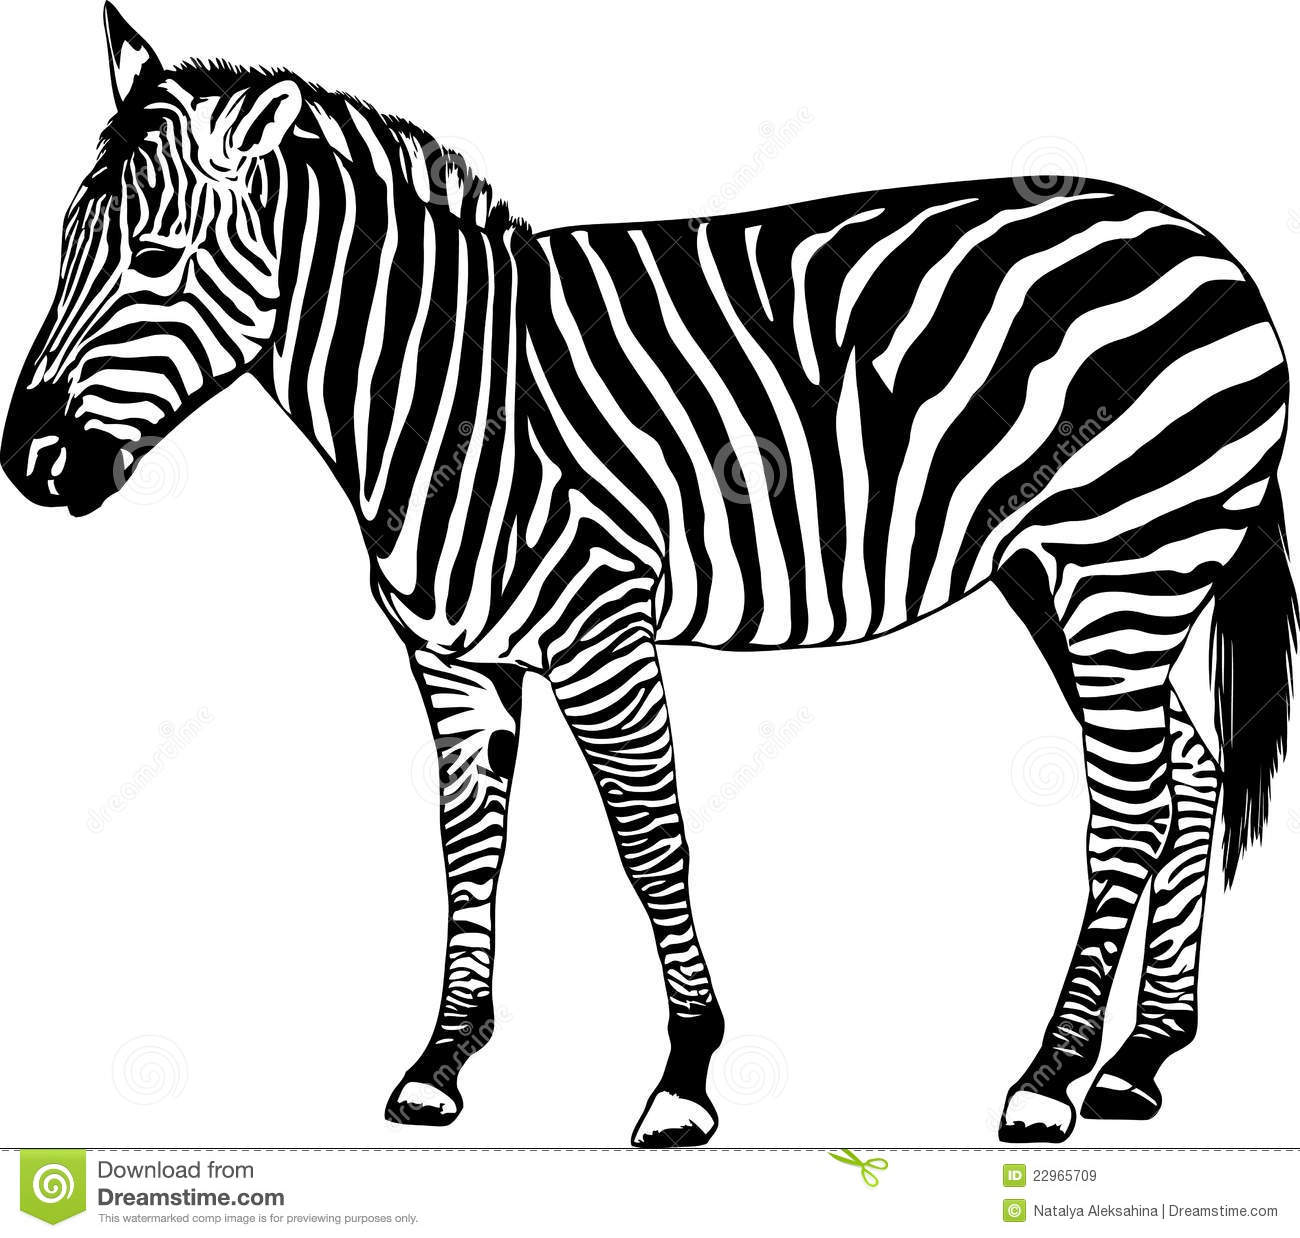 Zebra Vector Illustration Stock Vector Illustration Of